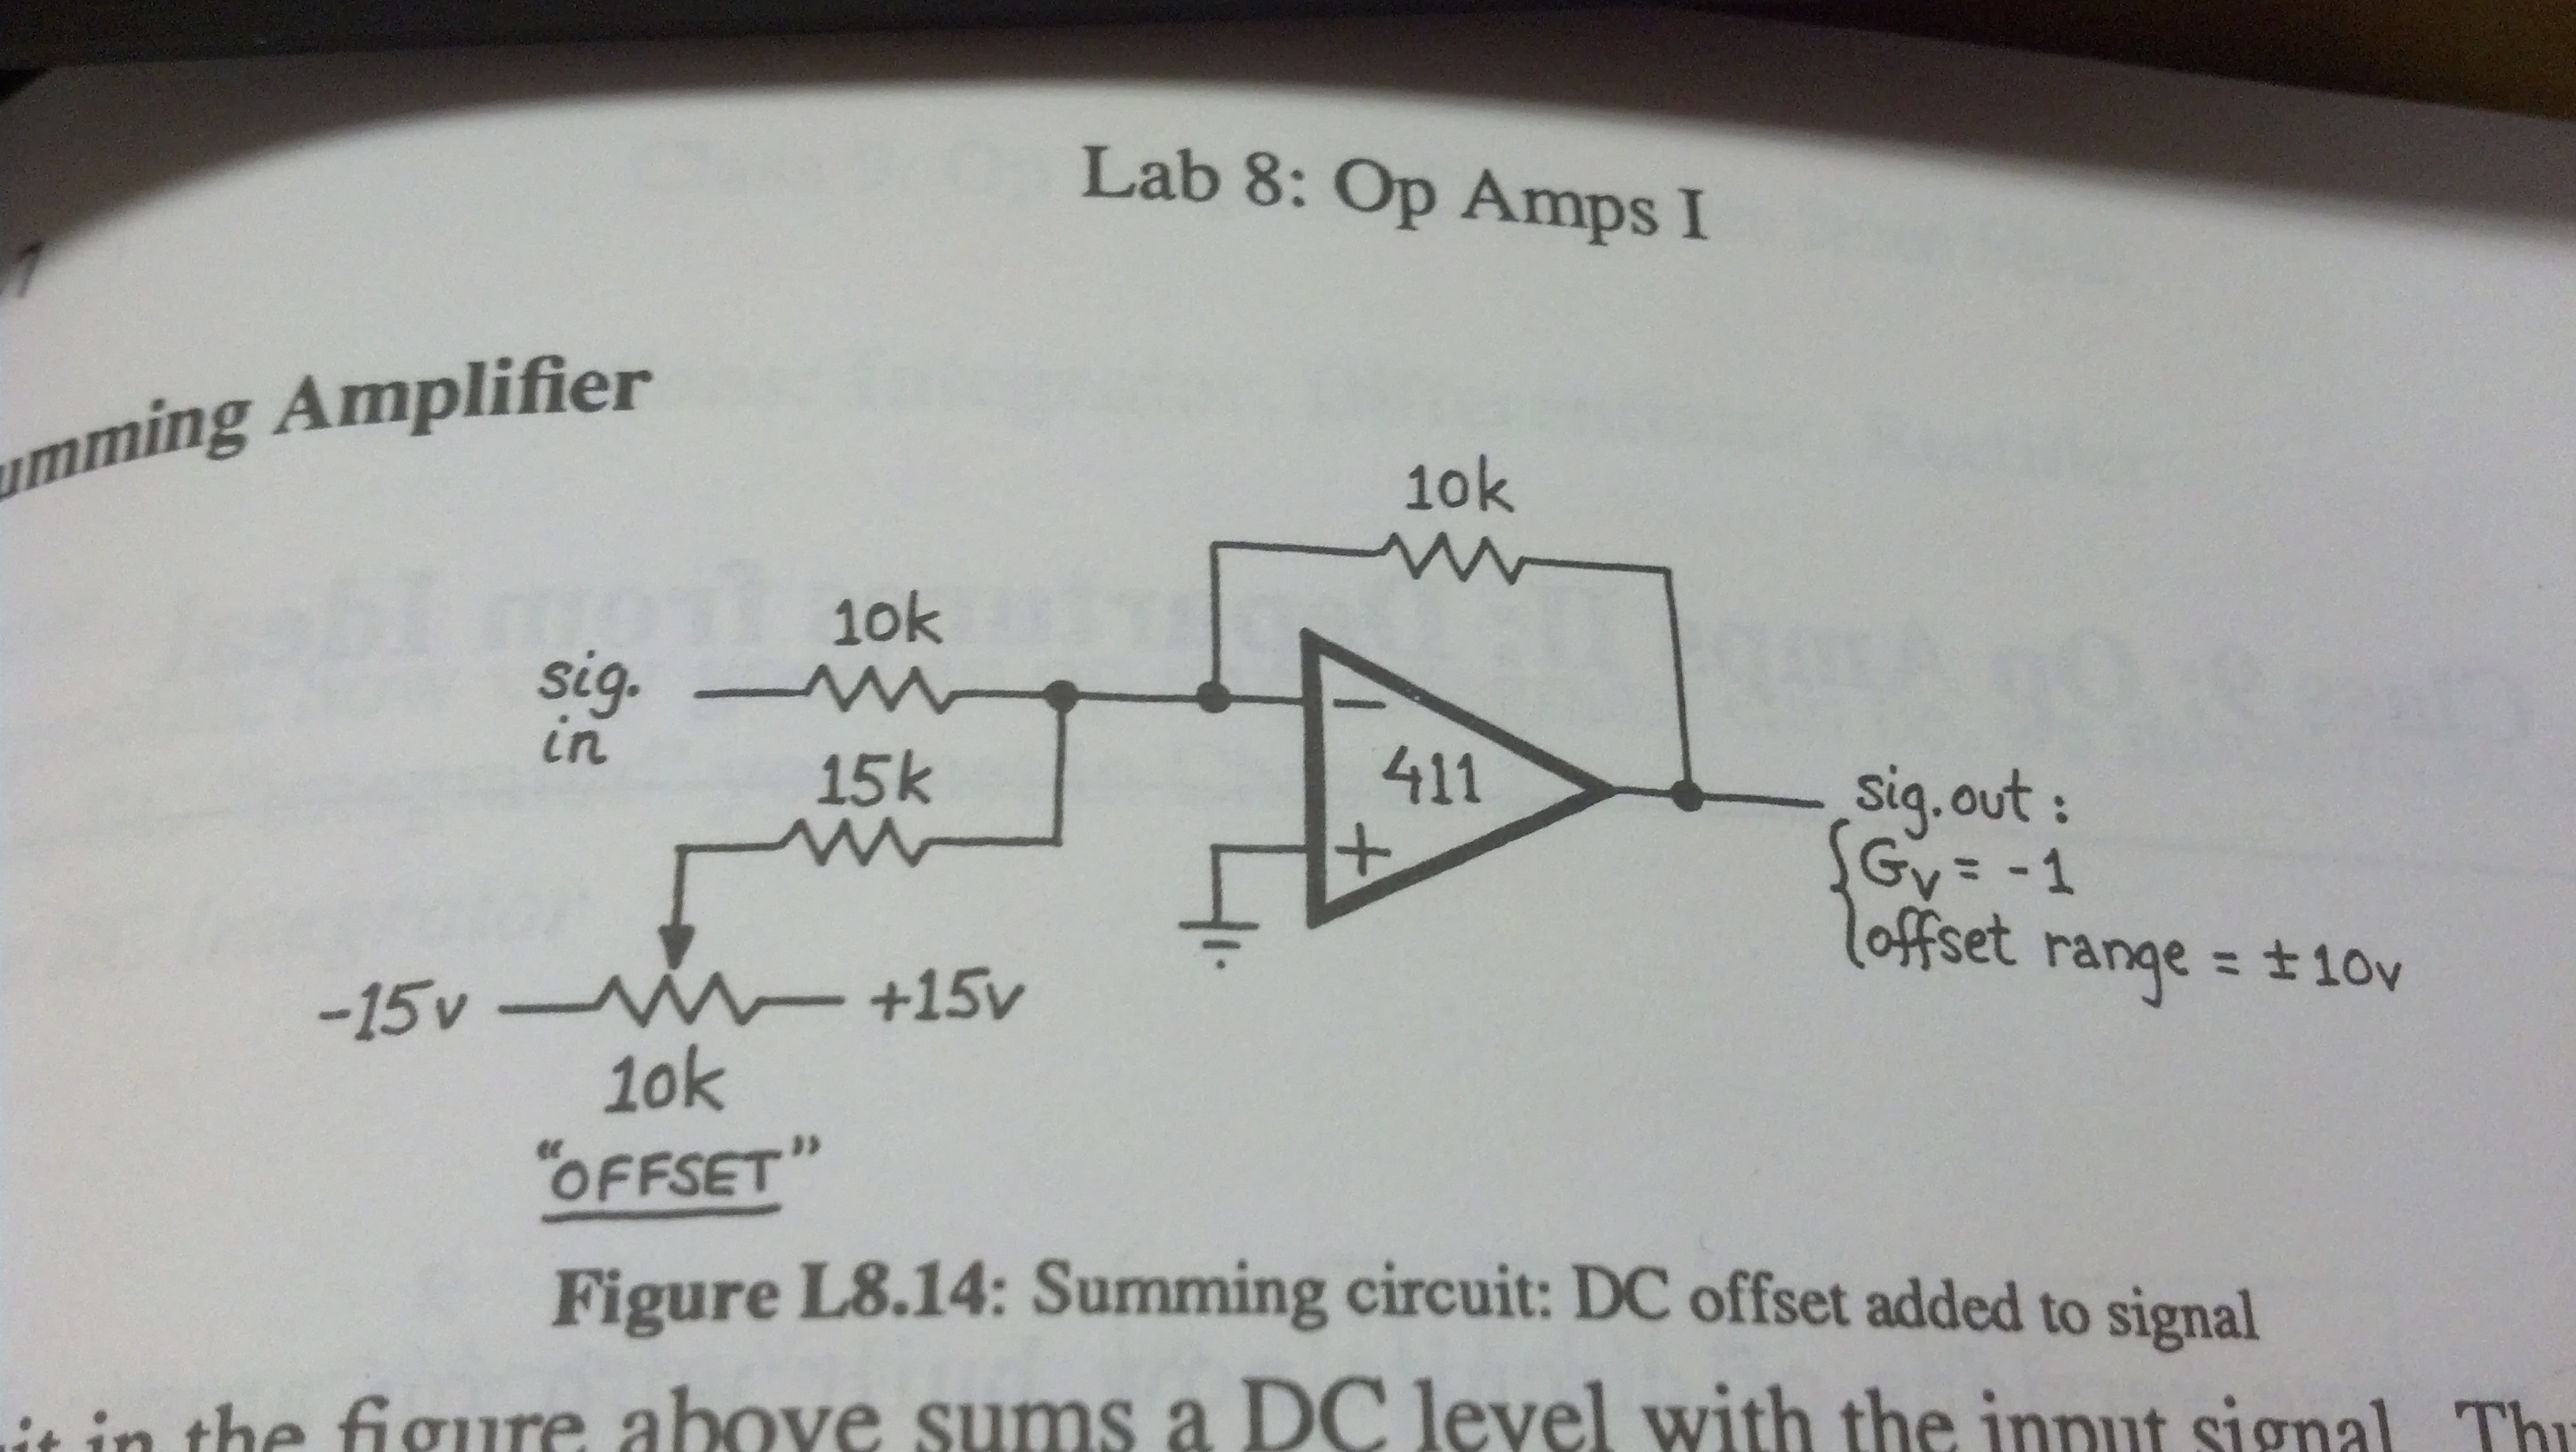 March 1st And 5th 2013 Op Amps Jackies Design Blog Operational Amplifiers Summing Amplifier 03 05 14 06 44 51